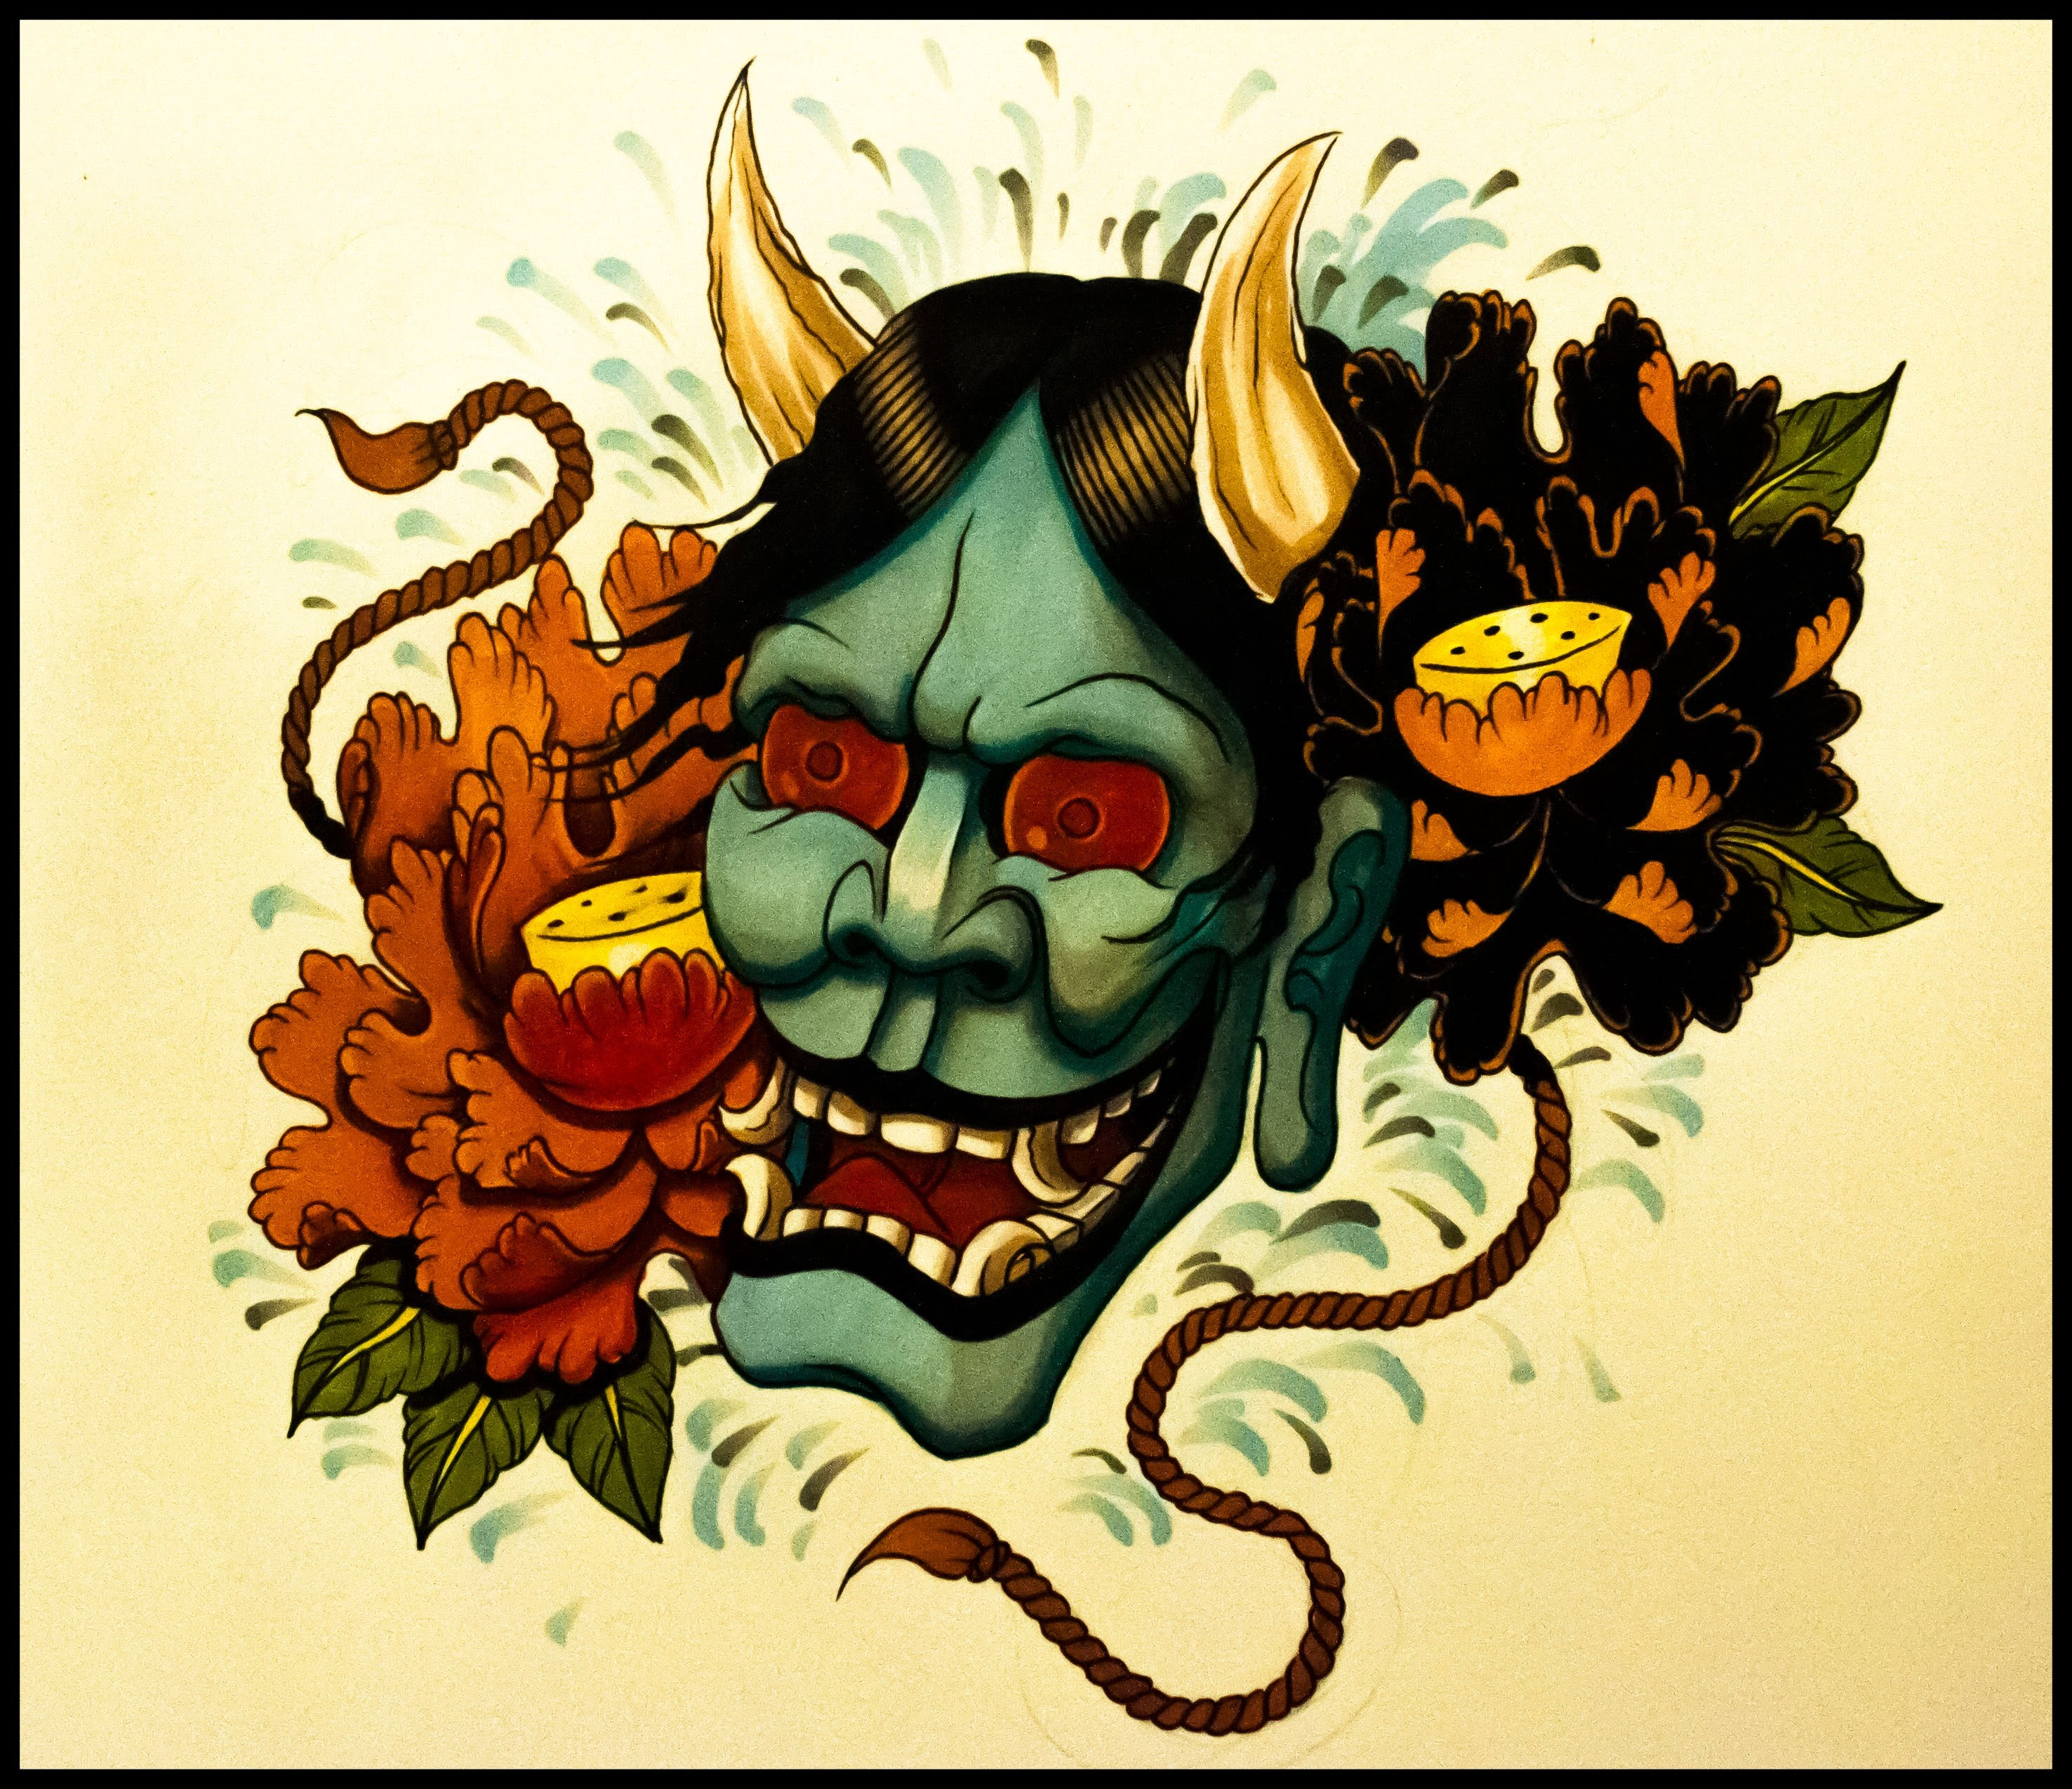 2952x2549 How To Draw A Hannya Mask Tattoo Style By Thebrokenpuppet